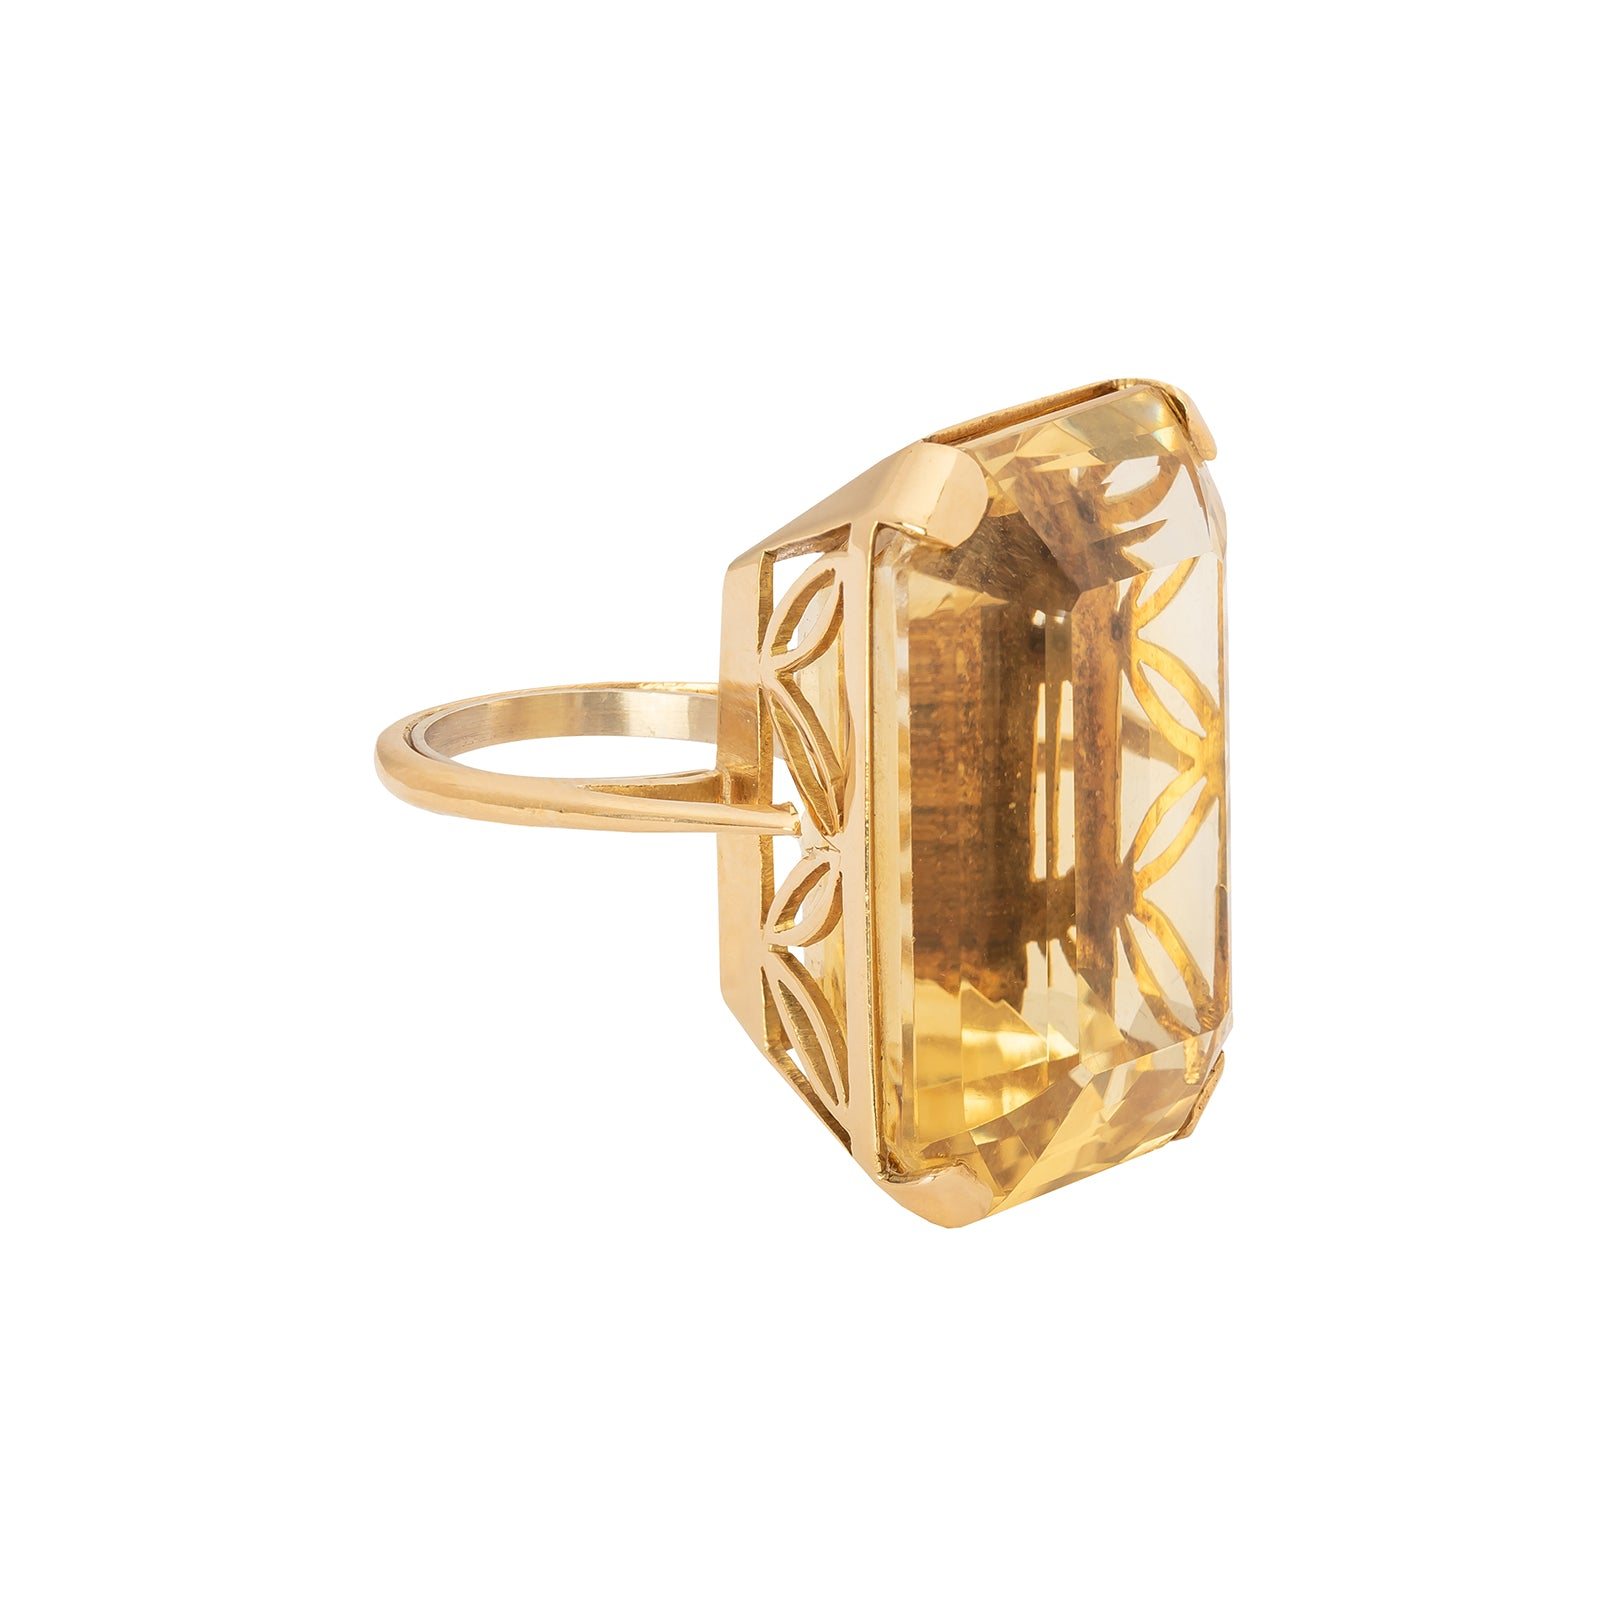 Antique & Vintage Jewelry Citrine Gold Ring - Rings - Broken English Jewelry